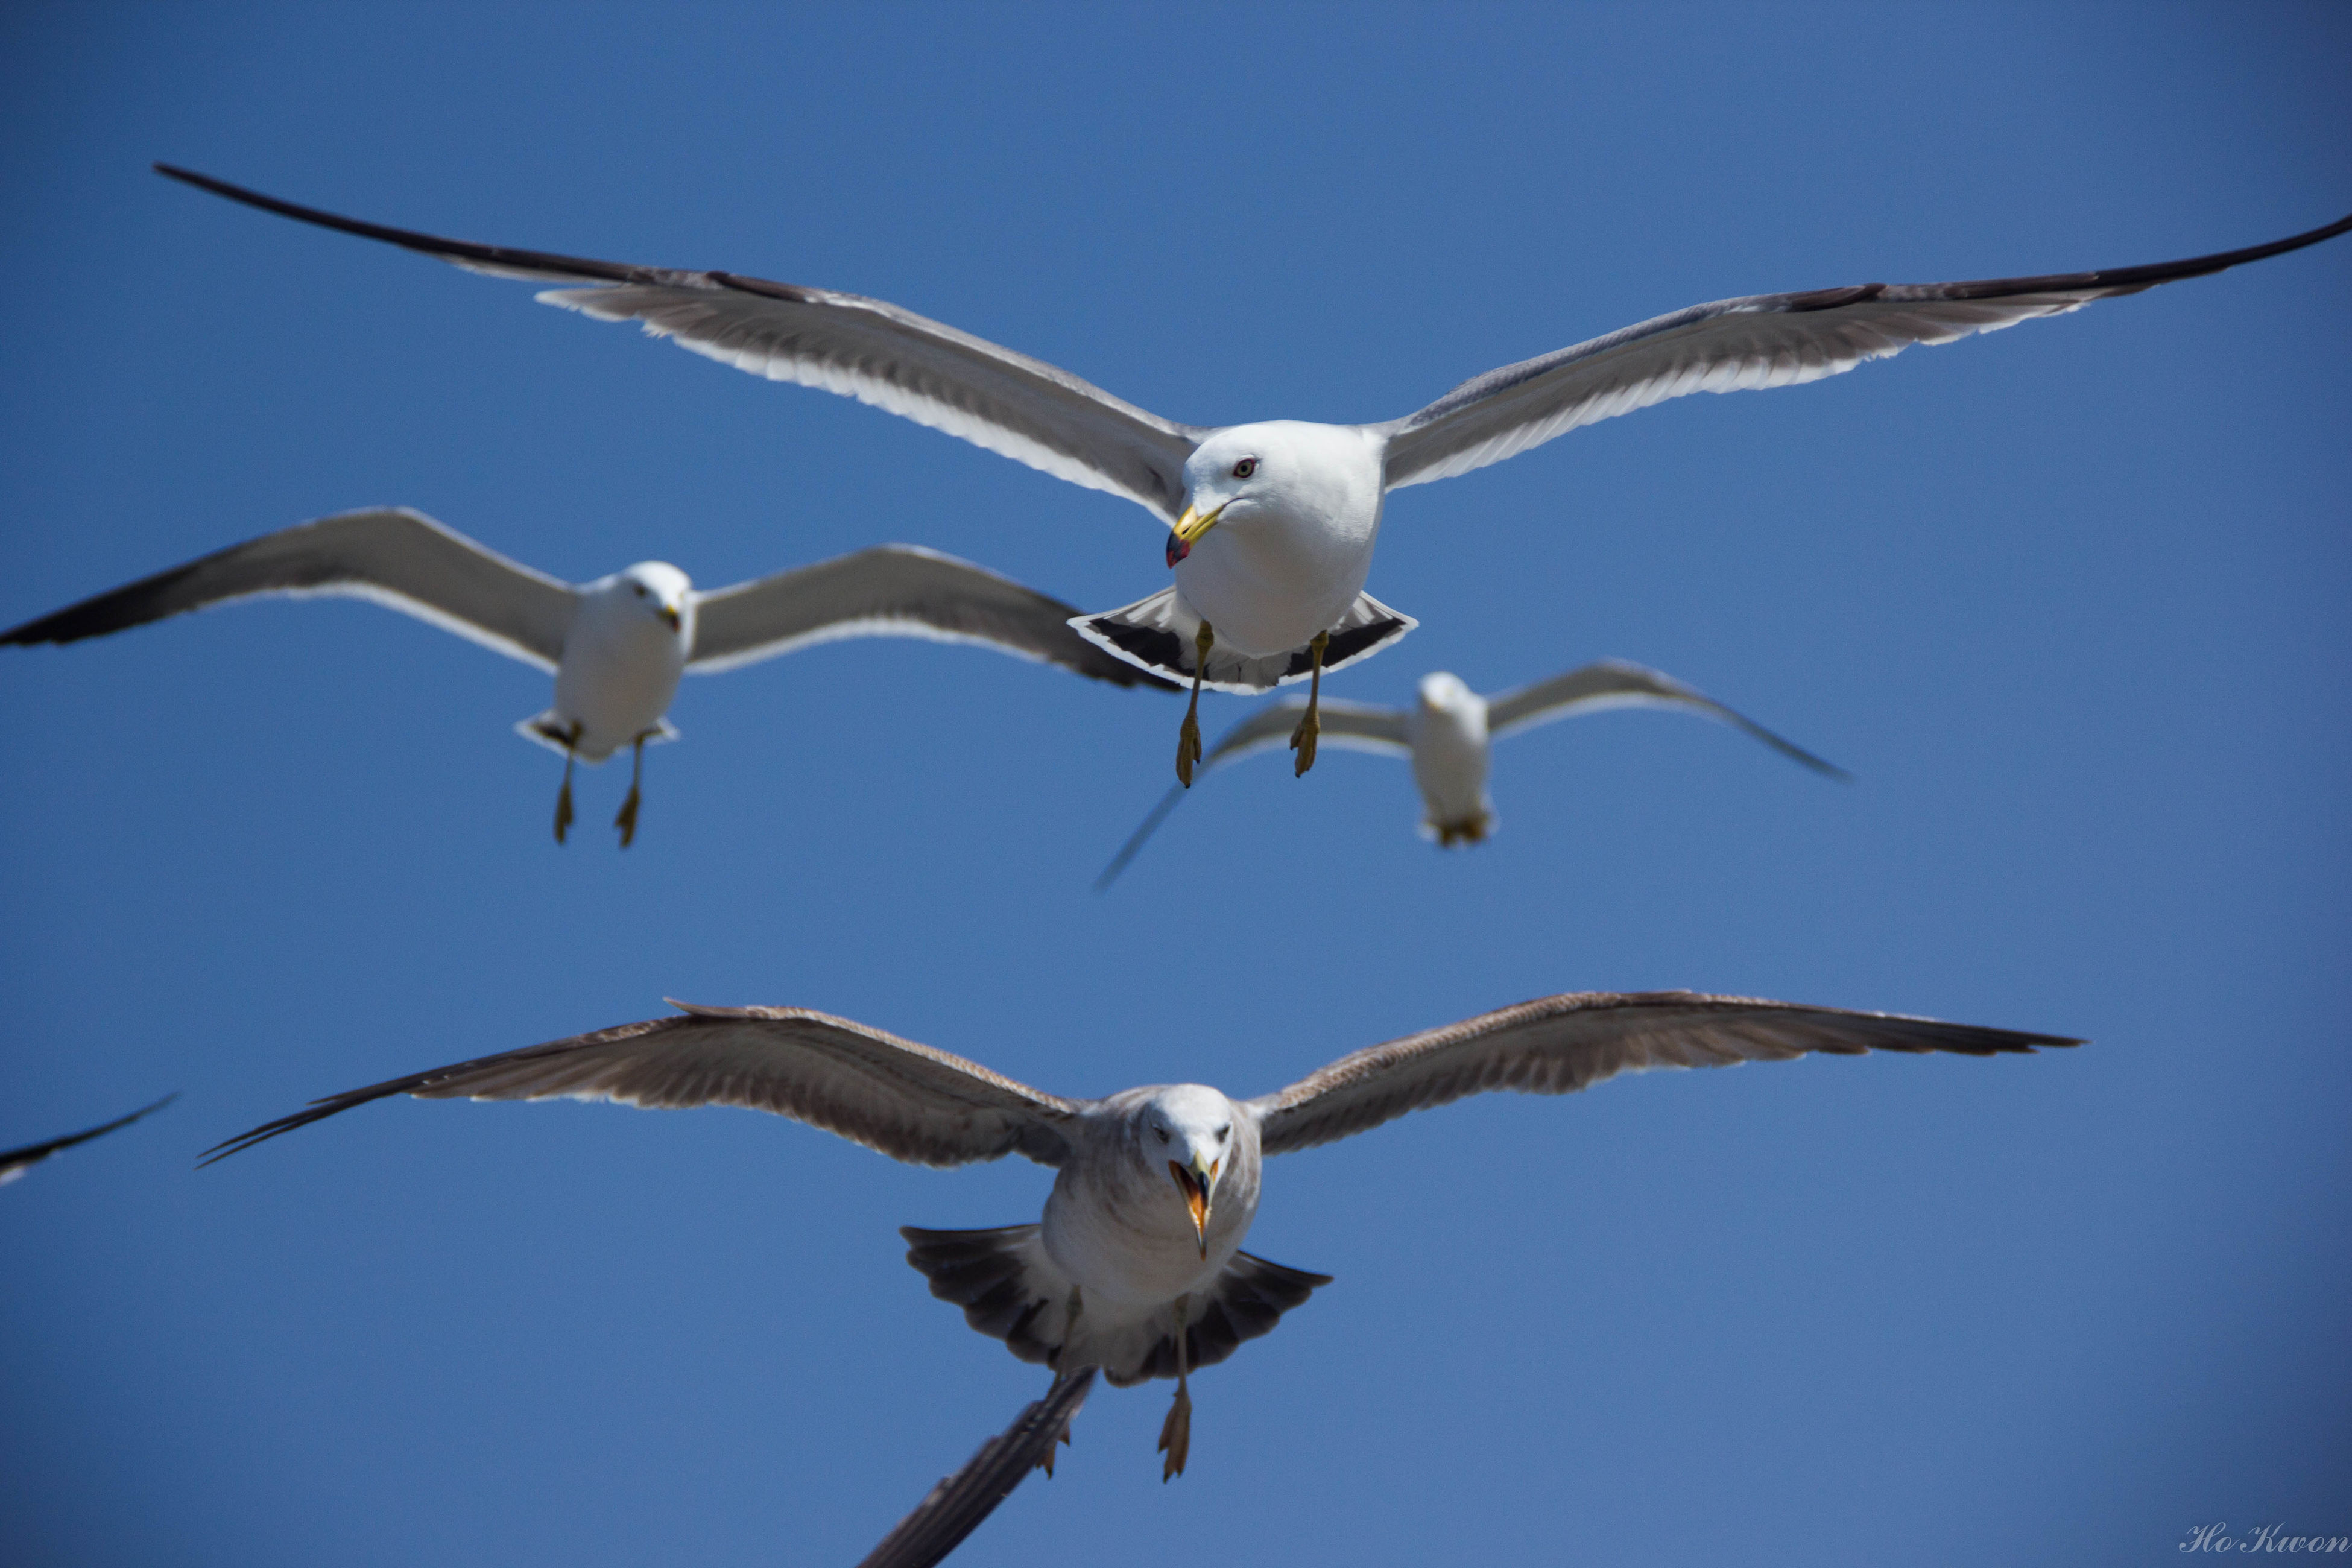 bird, animal themes, animals in the wild, flying, spread wings, wildlife, low angle view, seagull, clear sky, mid-air, blue, one animal, sky, animal wing, full length, nature, day, flight, motion, zoology